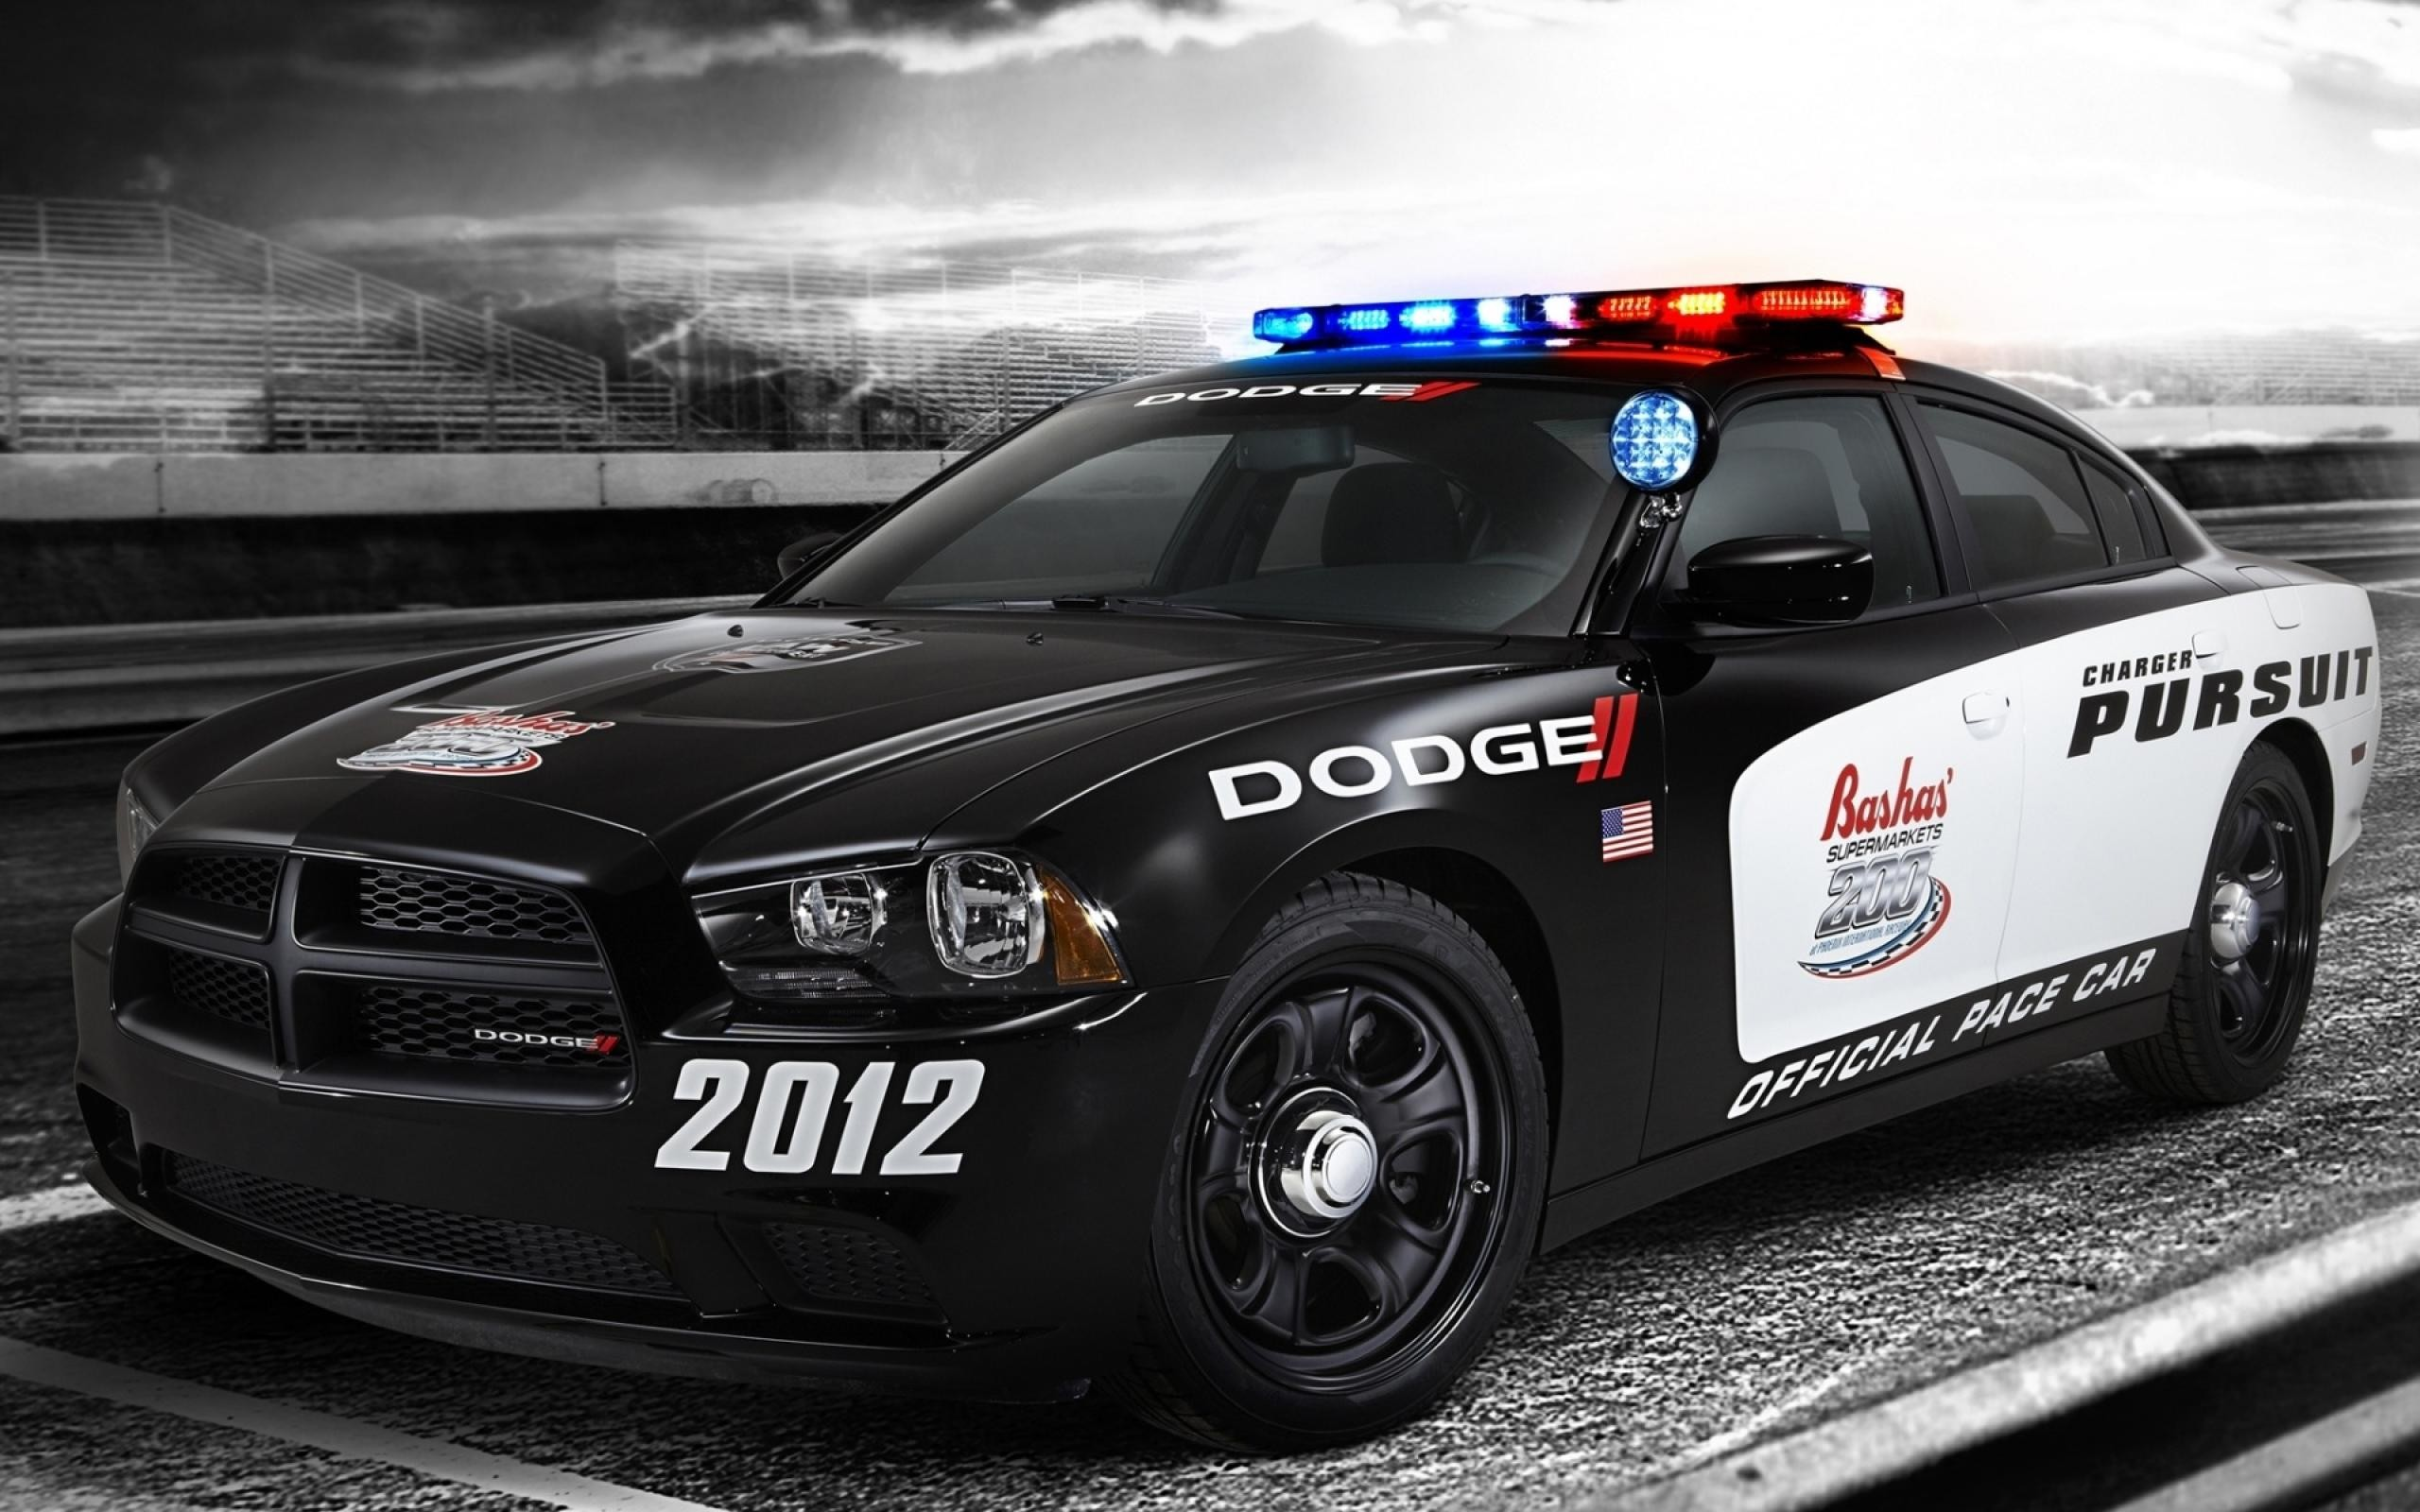 Police Car Website >> Police Car Wallpapers 70 Images